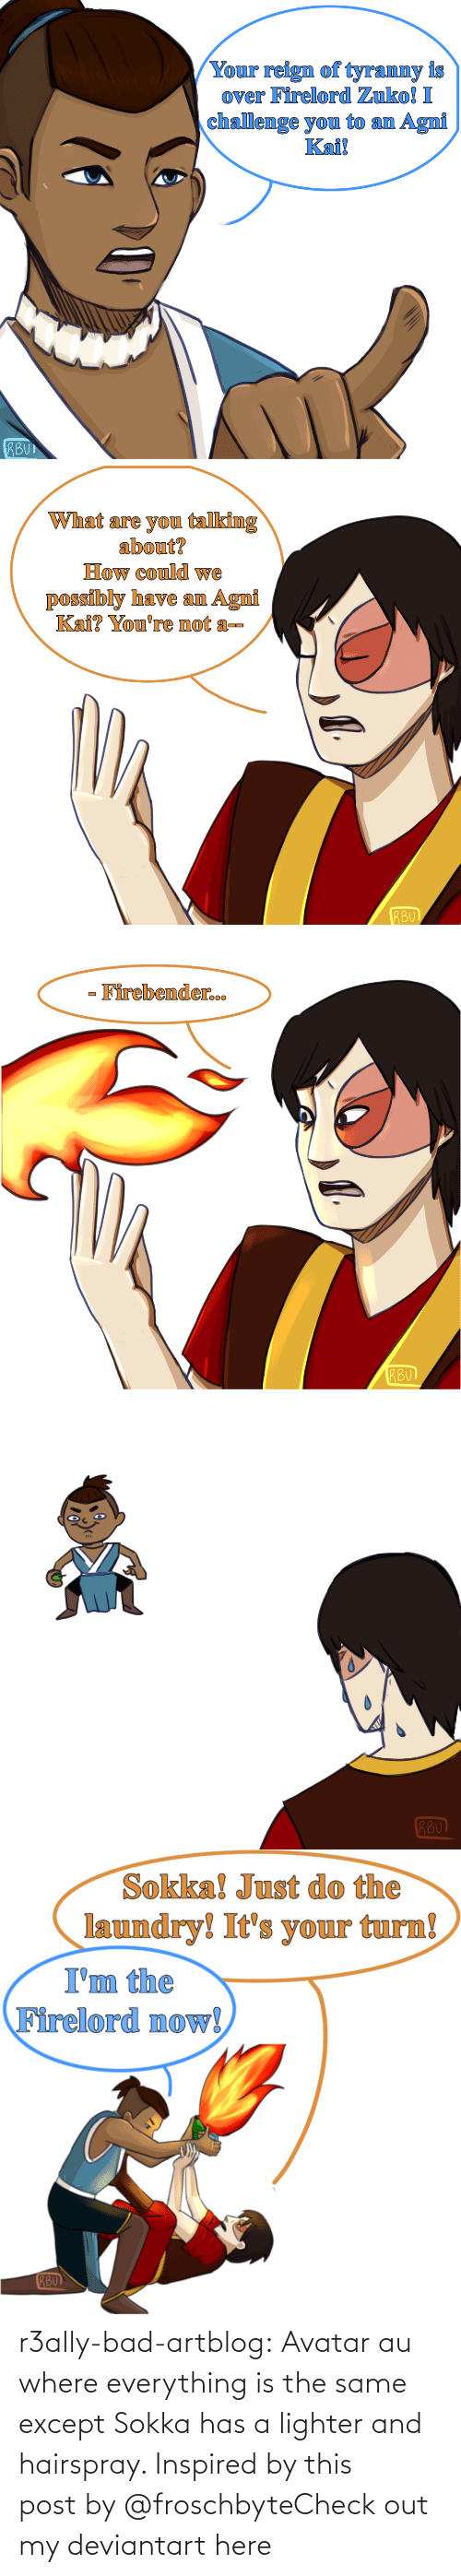 art: r3ally-bad-artblog:  Avatar au where everything is the same except Sokka has a lighter and hairspray. Inspired by this post by @froschbyteCheck out my deviantart here